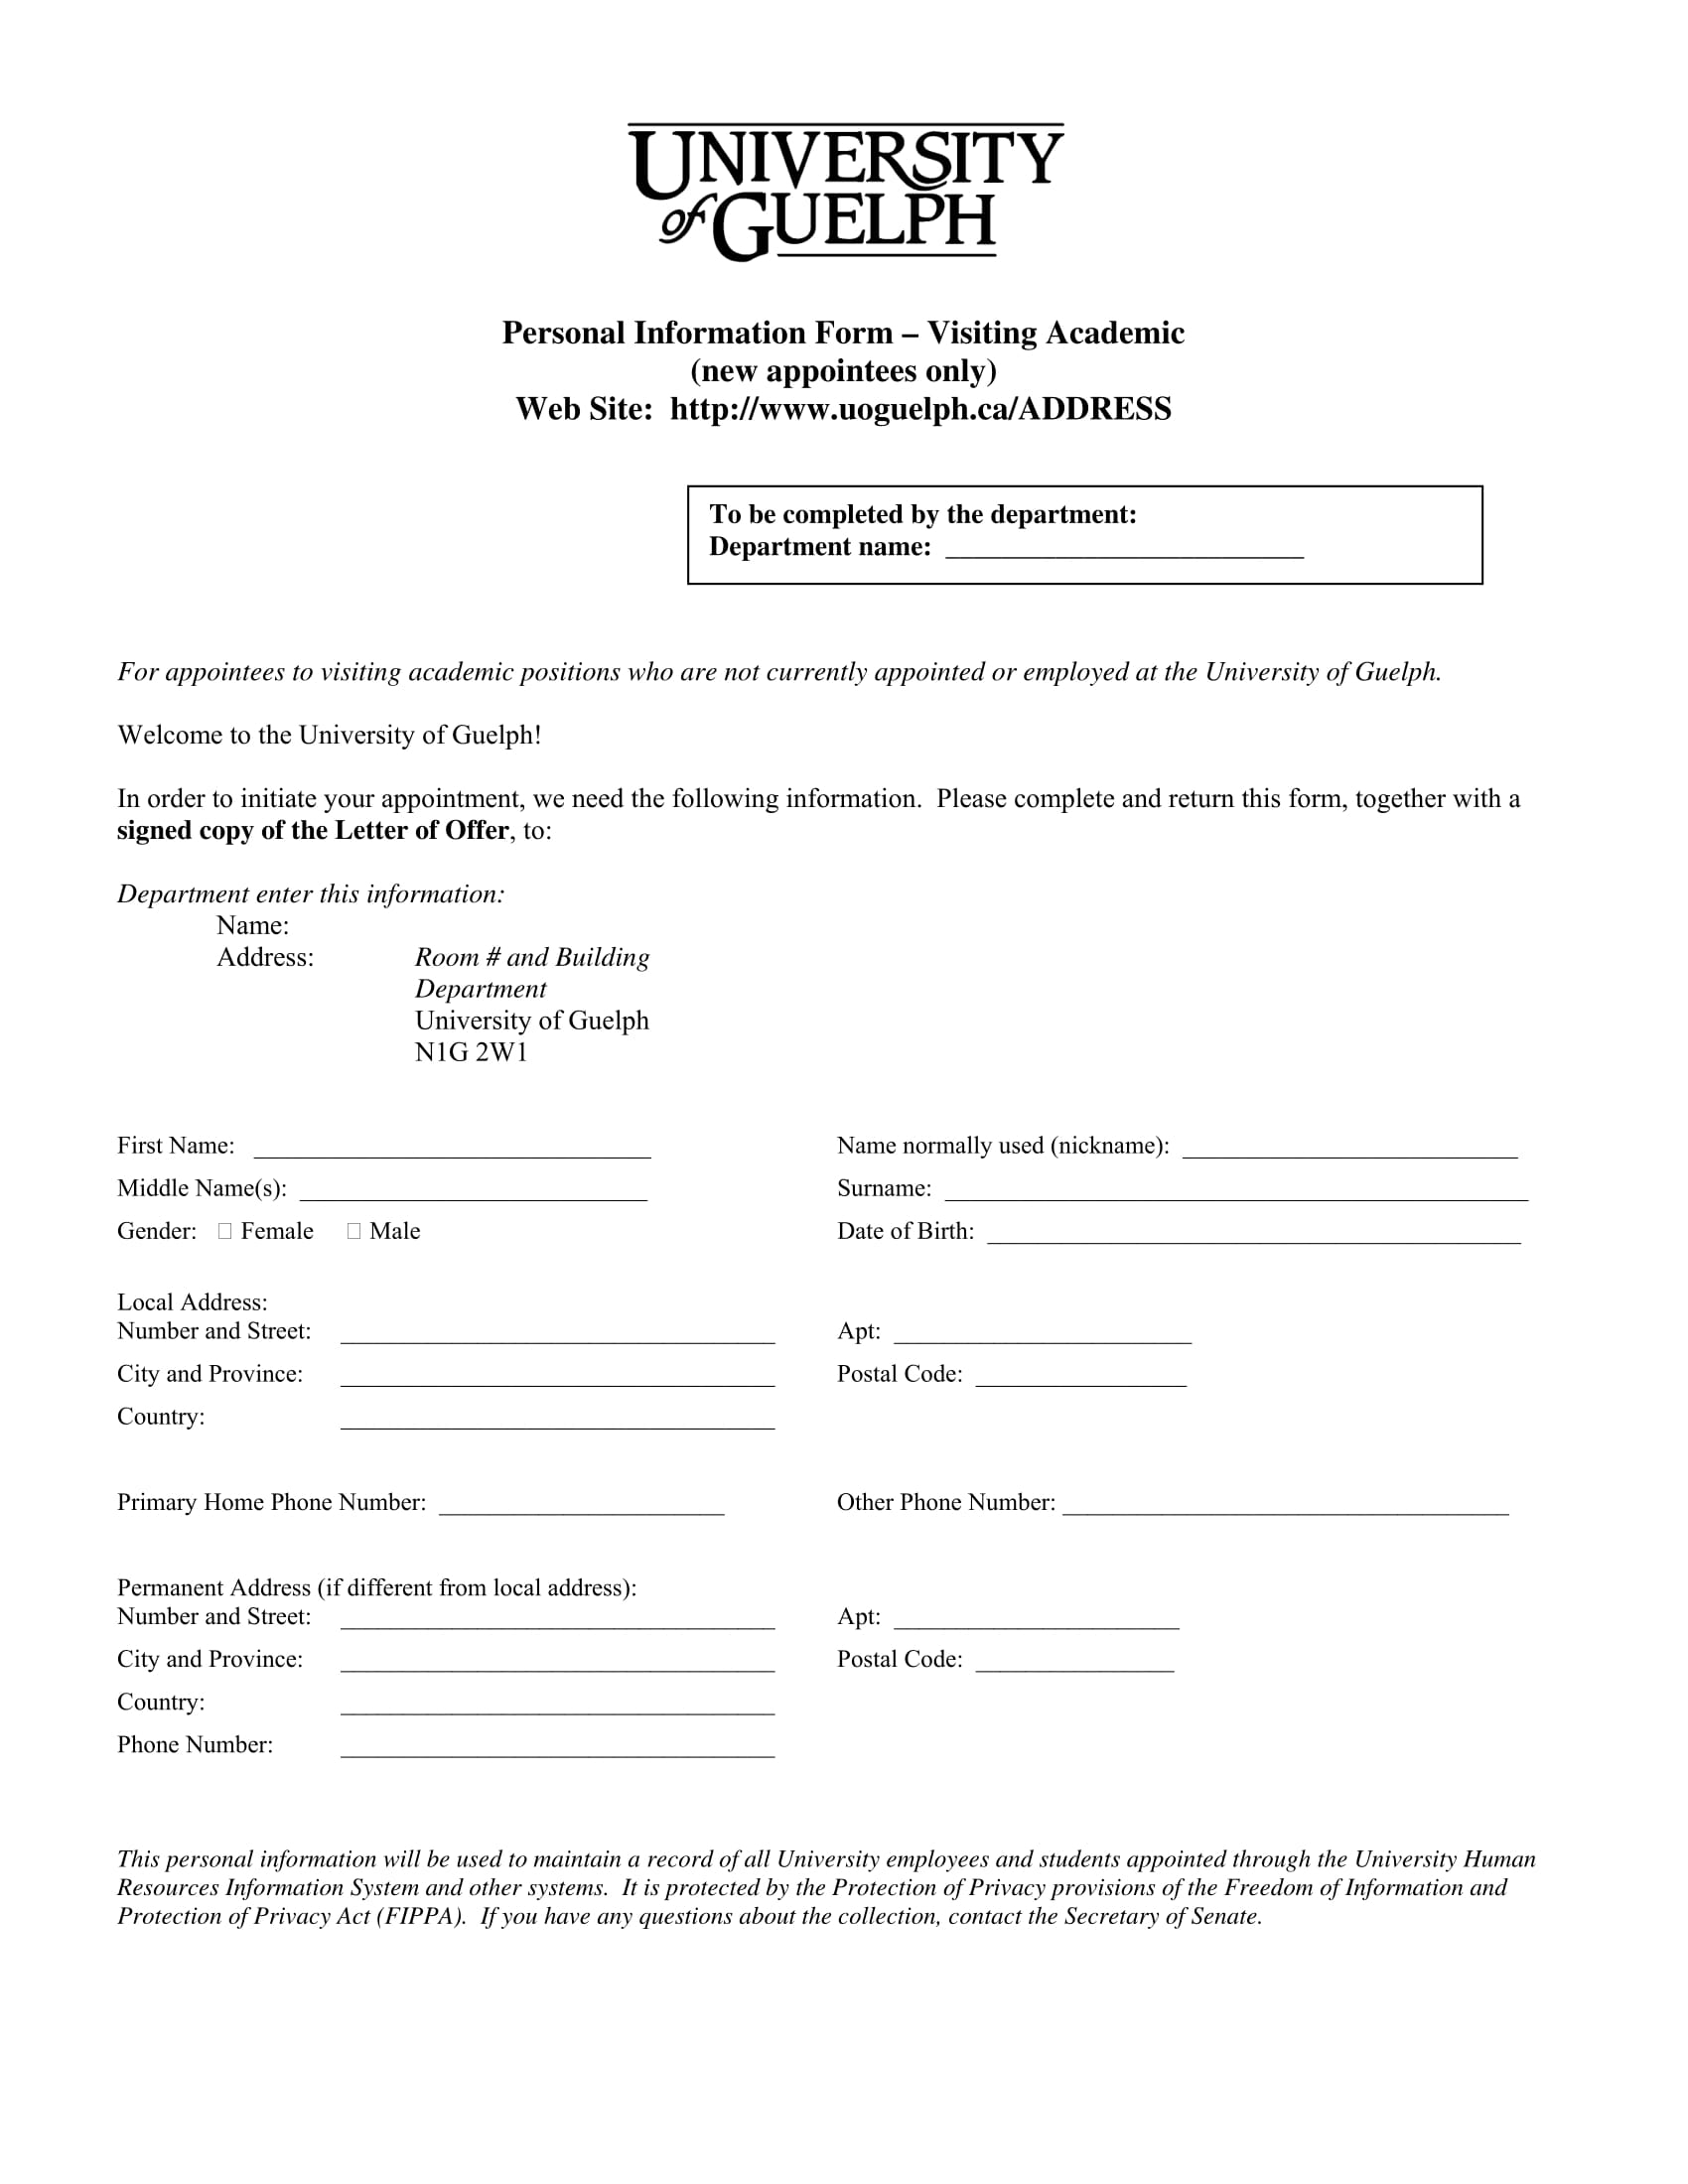 personal information form for new appointees 1